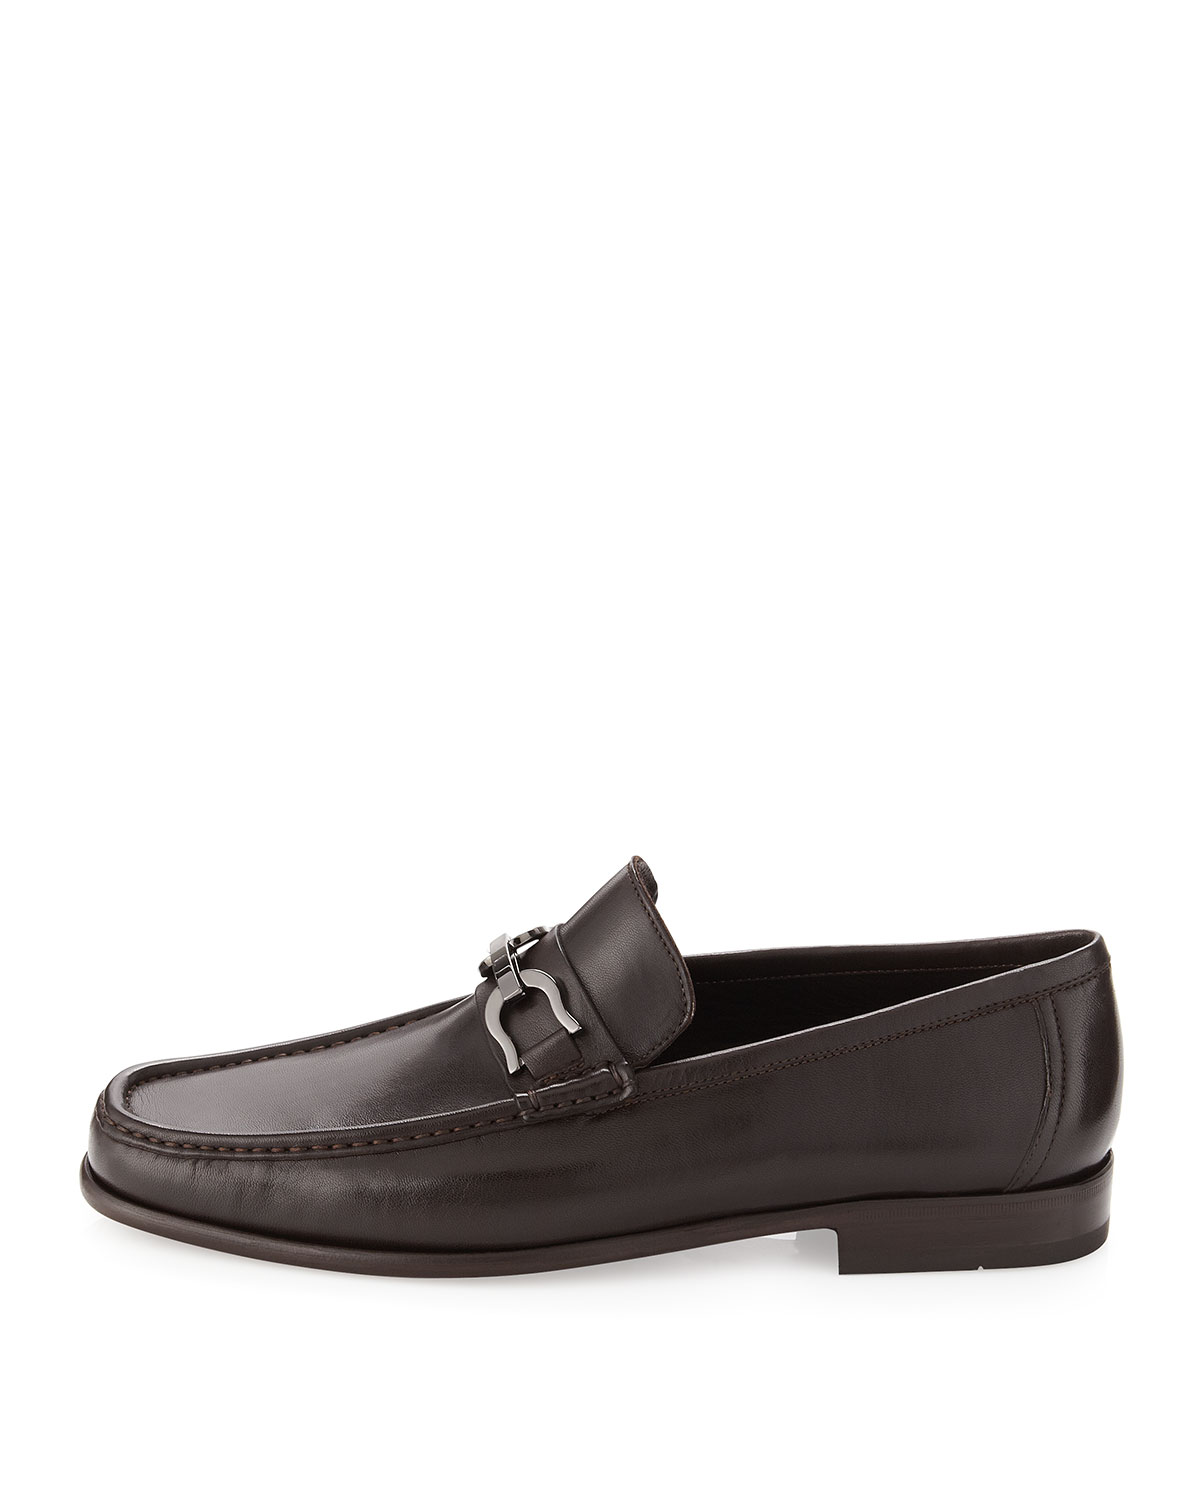 881fa524740 Lyst - Bruno Magli Mikko Buckle Loafer Dark Brown in Black for Men